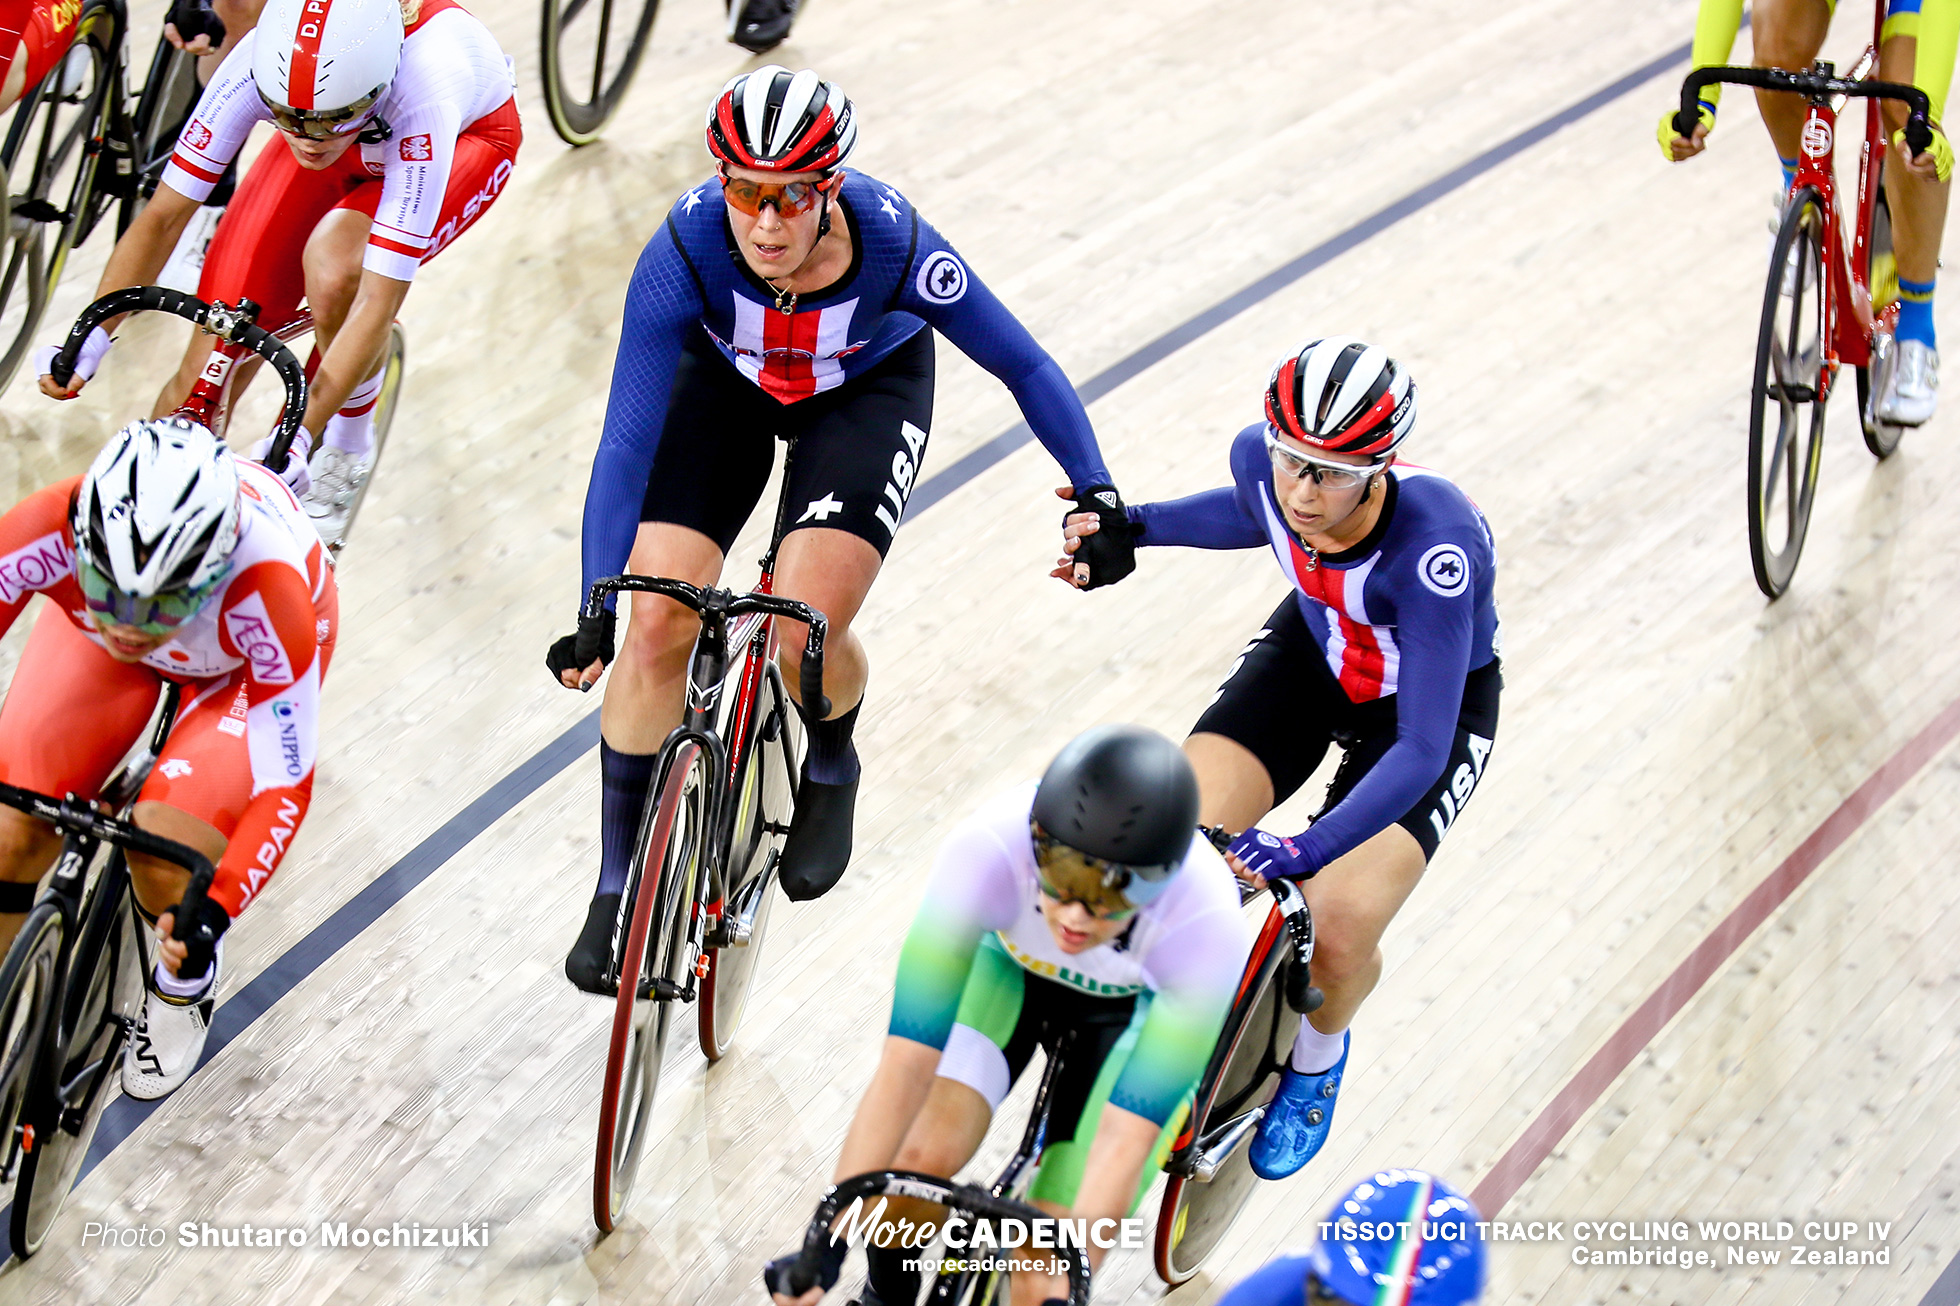 Women's Madison / TISSOT UCI TRACK CYCLING WORLD CUP IV, Cambridge, New Zealand